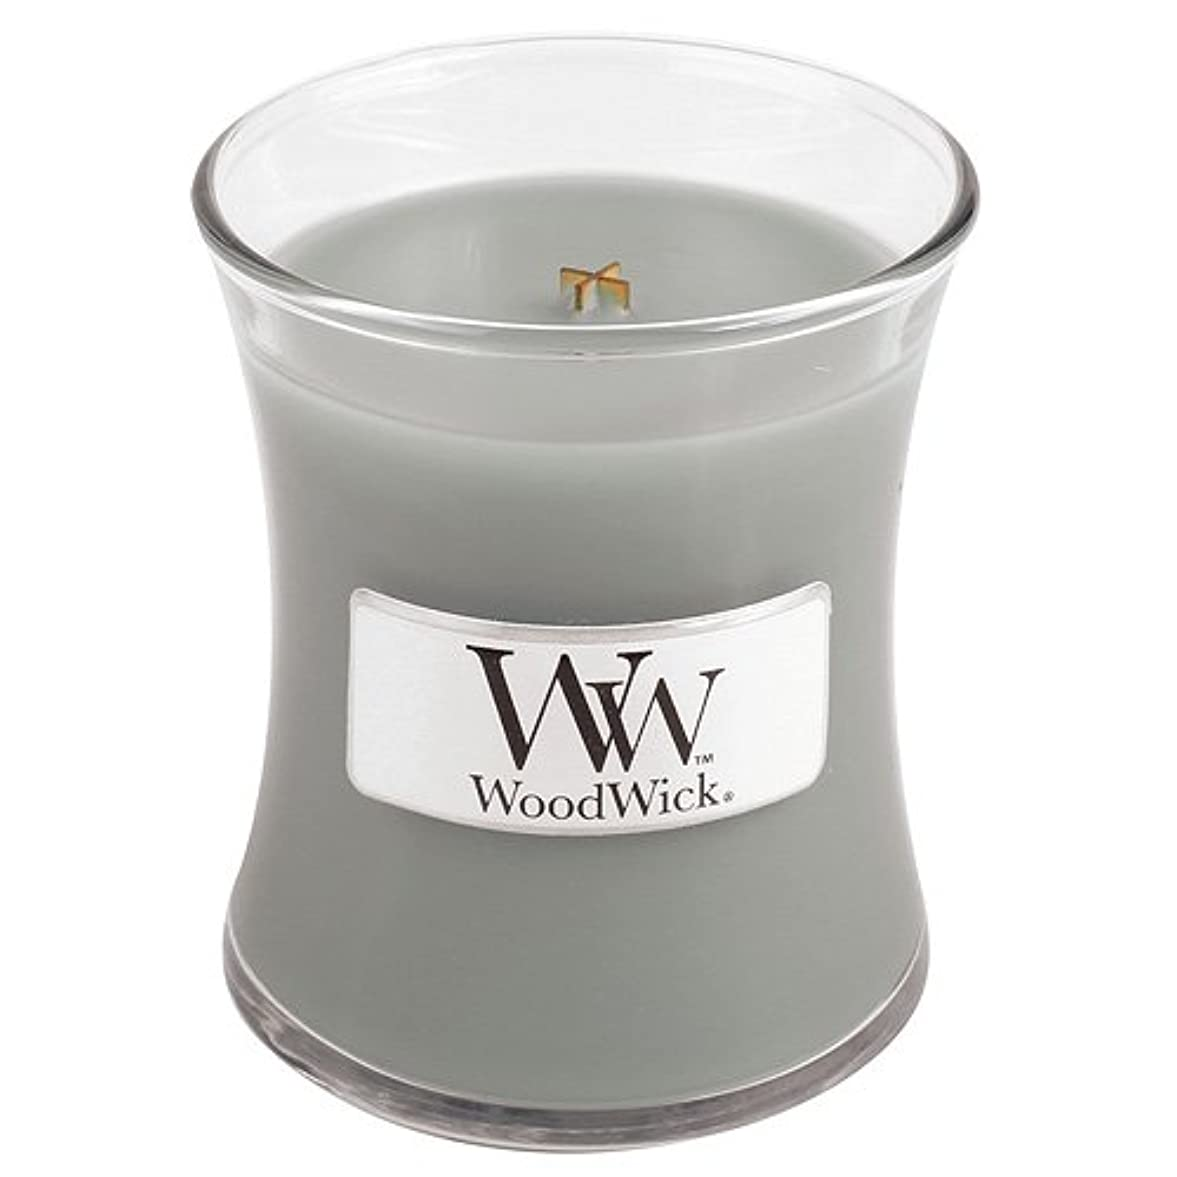 ベルベットスーツケース罪Woodwick Mini Fireside Candle 3.4oz by WoodWick